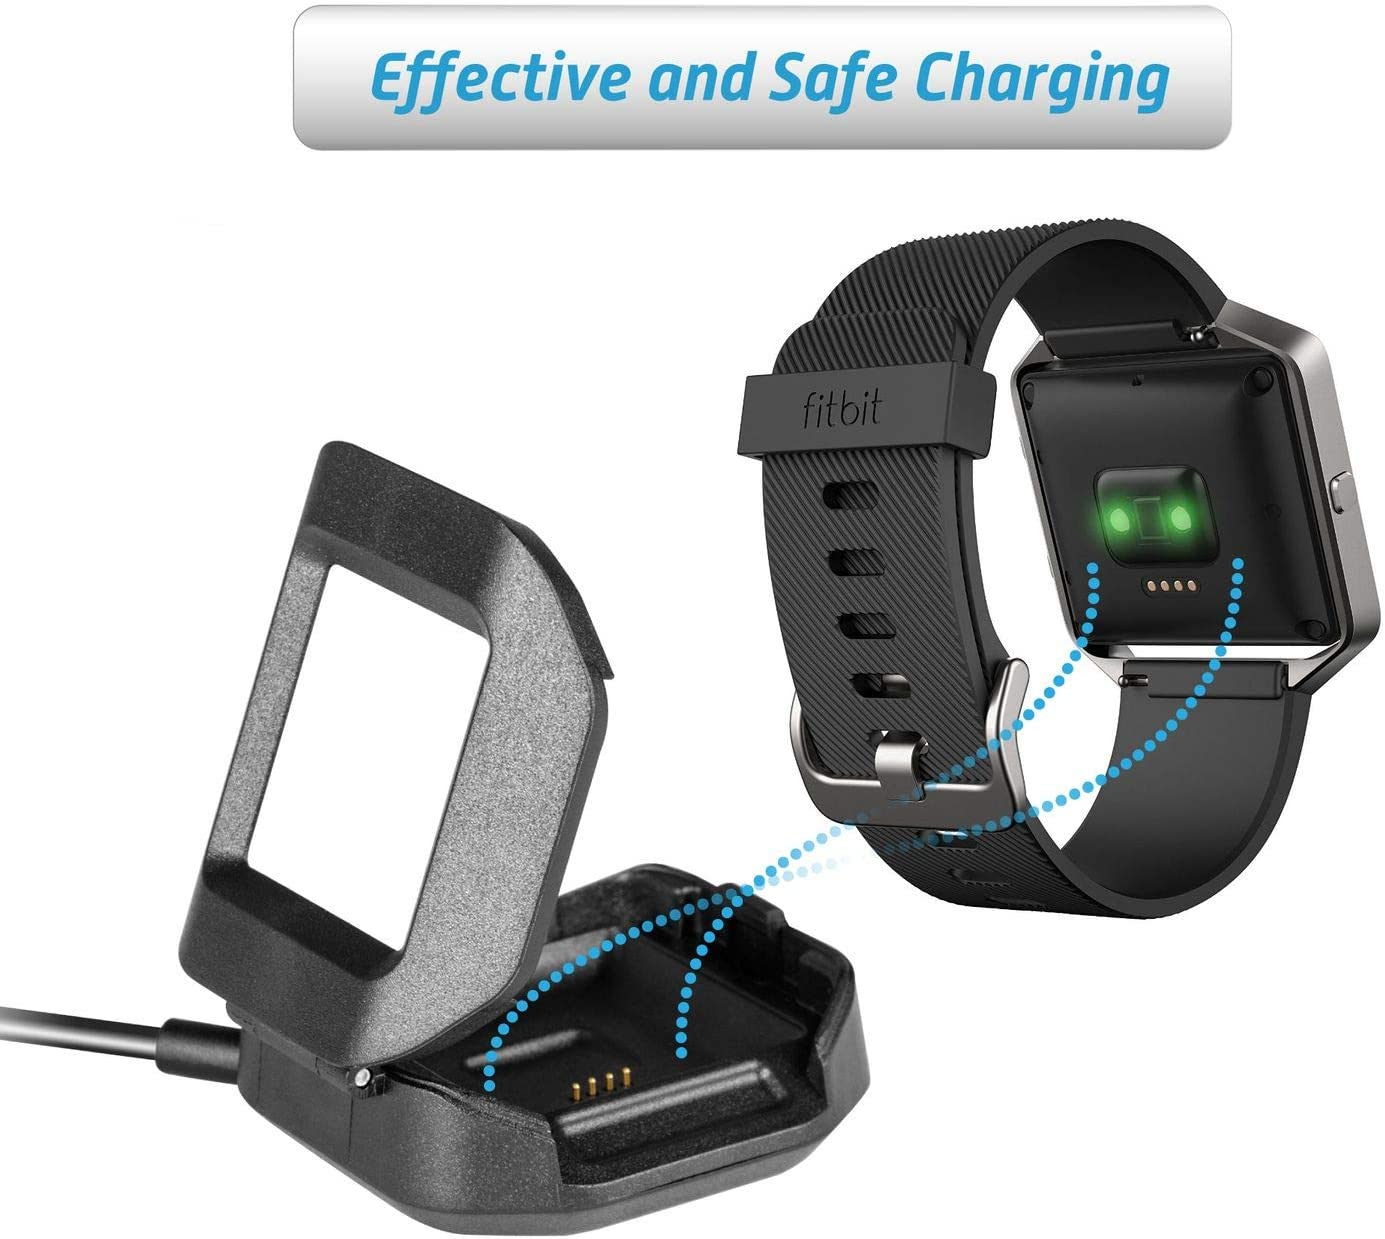 Replacement 3 Feet Charging Cable Cradle Compatible with Fitbit Blaze Smartwatch Wireless Fitness Tracker Activity Wristband Insten USB Charger for Fitbit Blaze Black